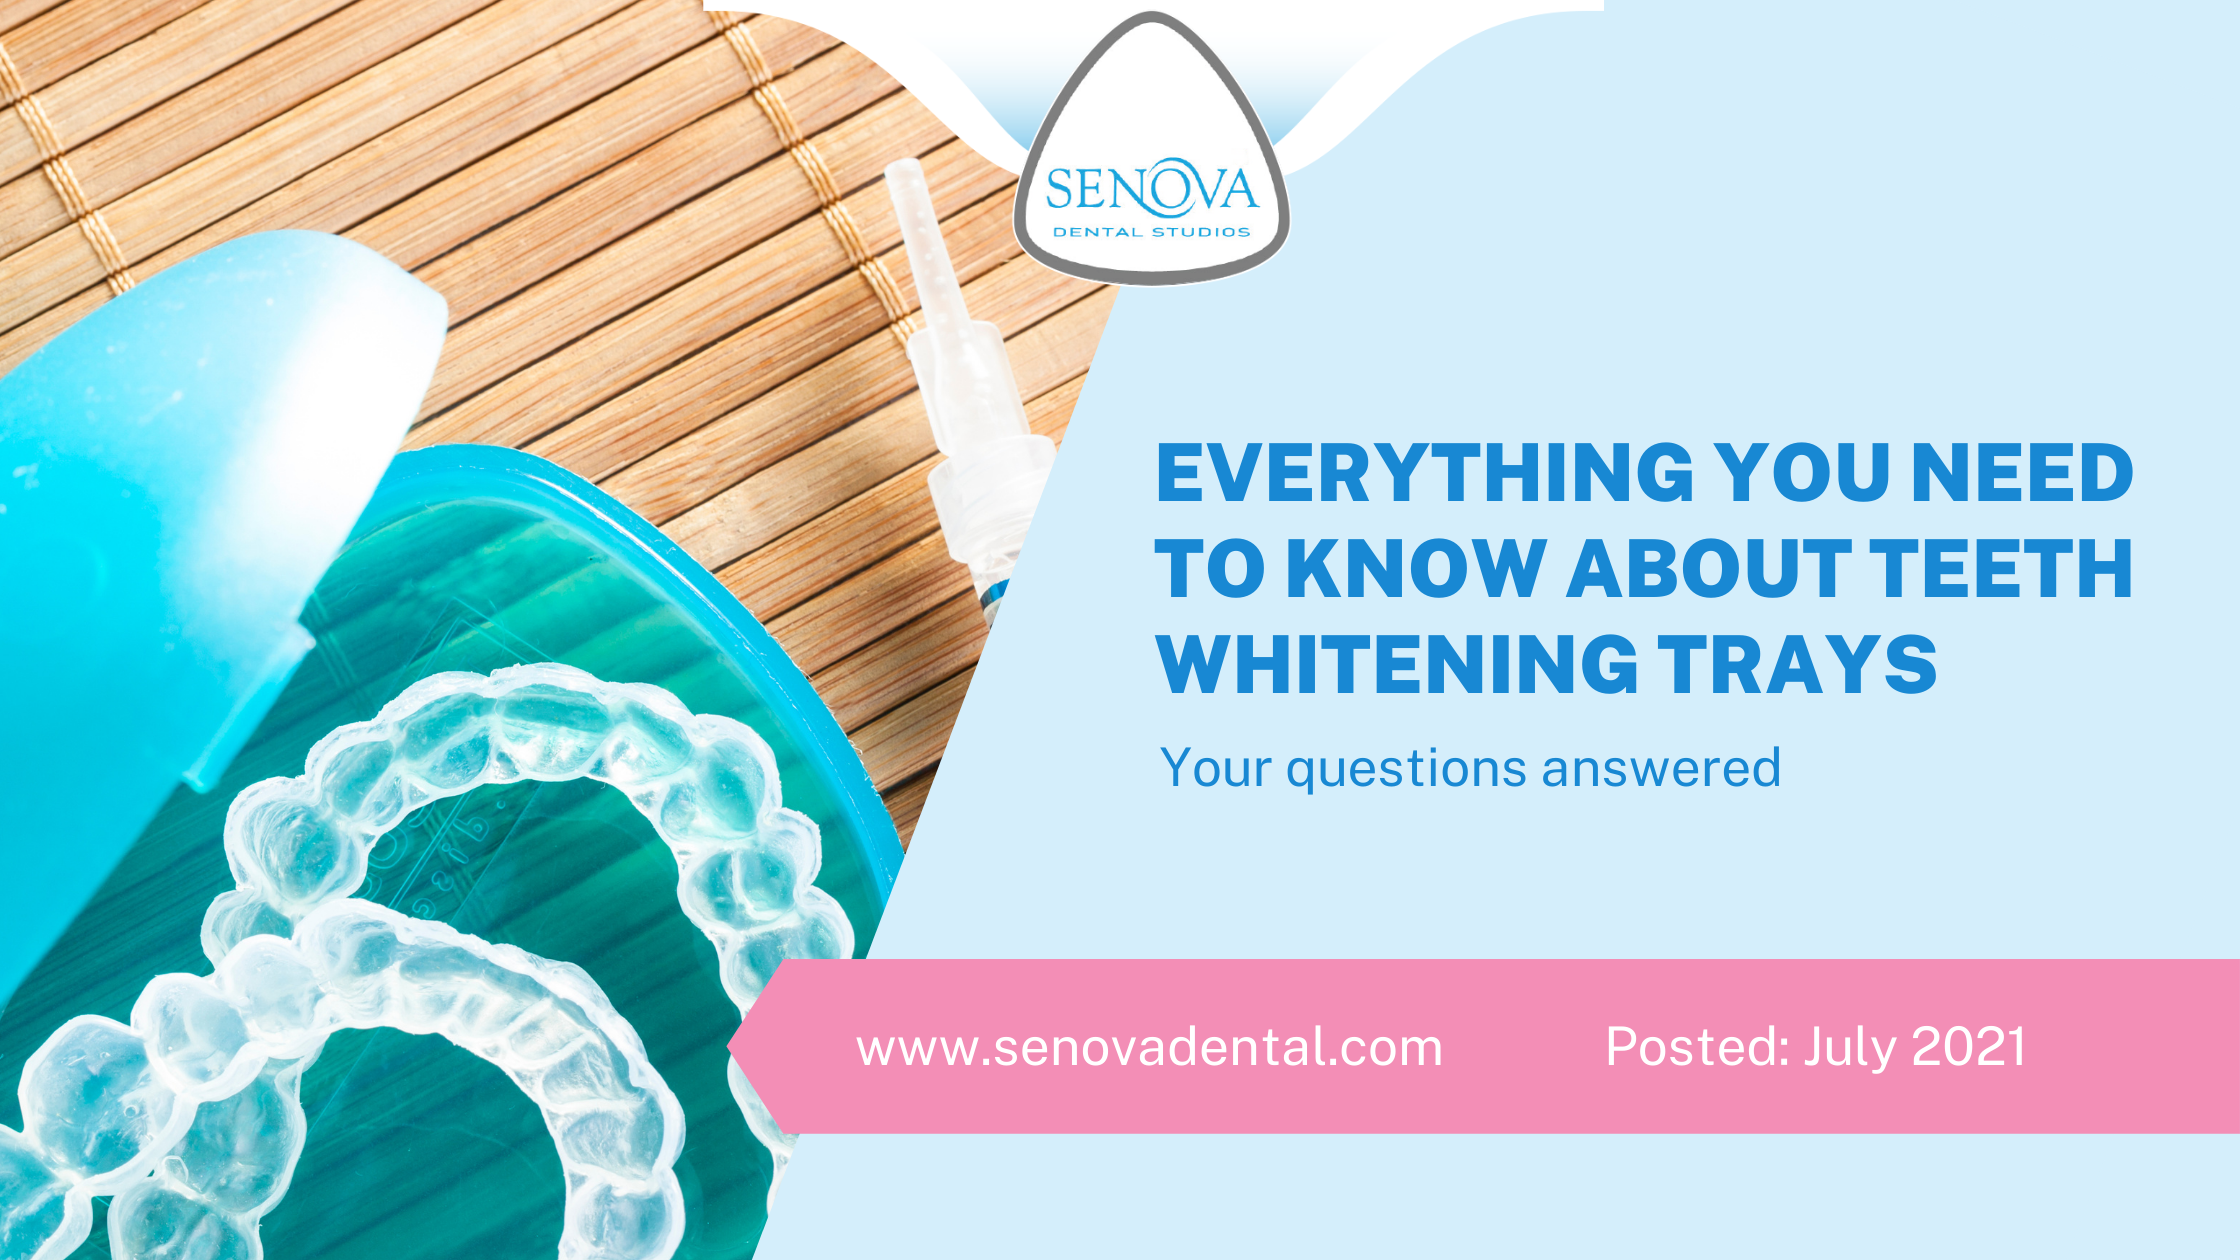 Everything You Need To Know About Teeth Whitening Trays